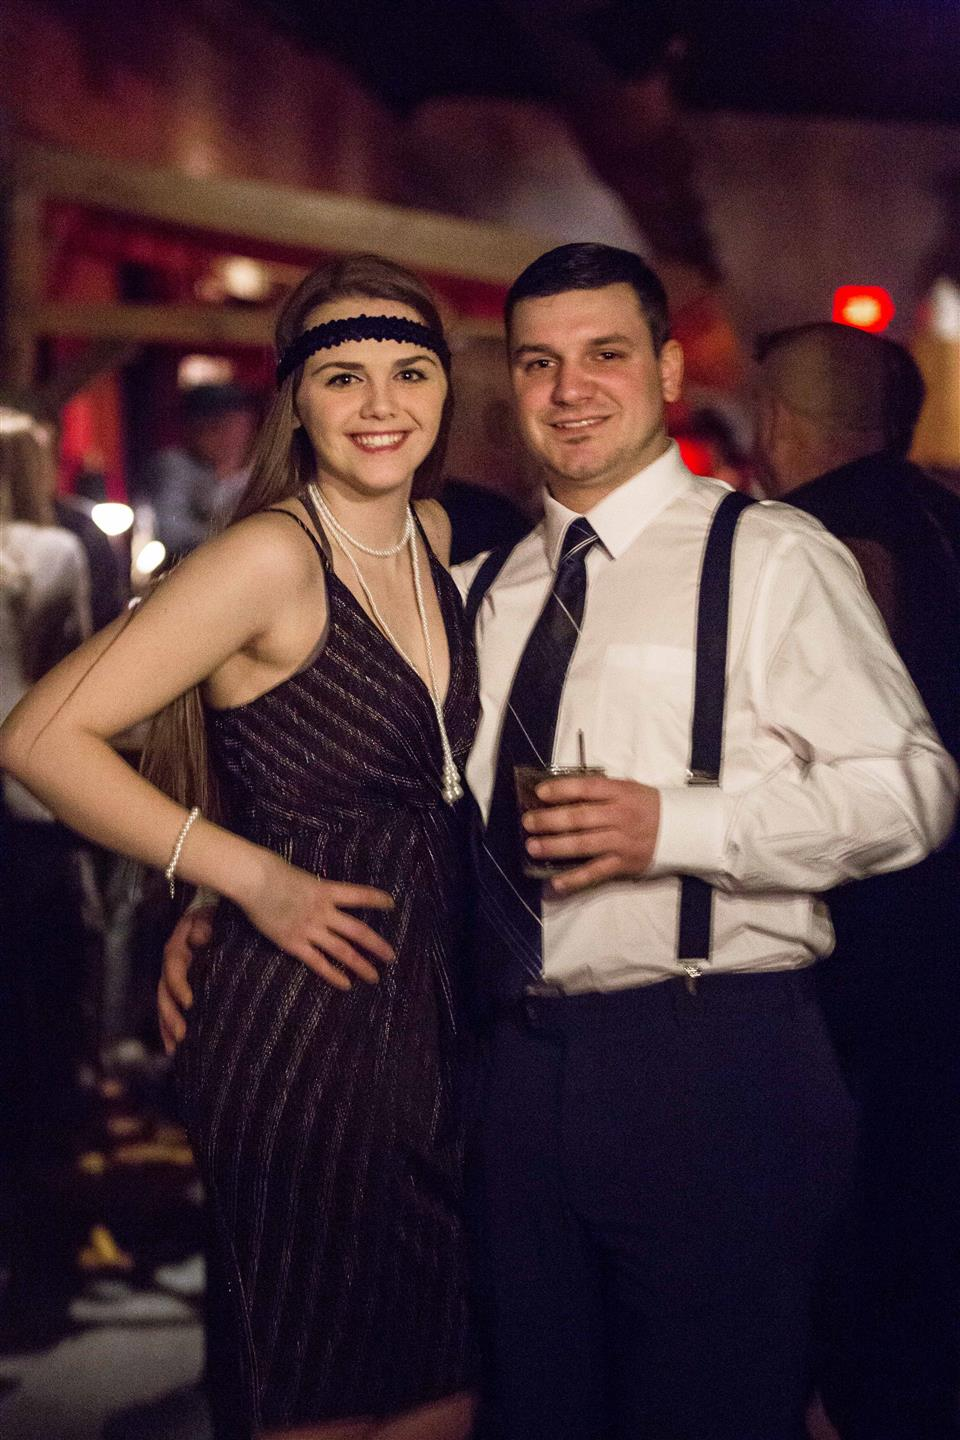 Couple dressed in flapper outfits posing for a picture